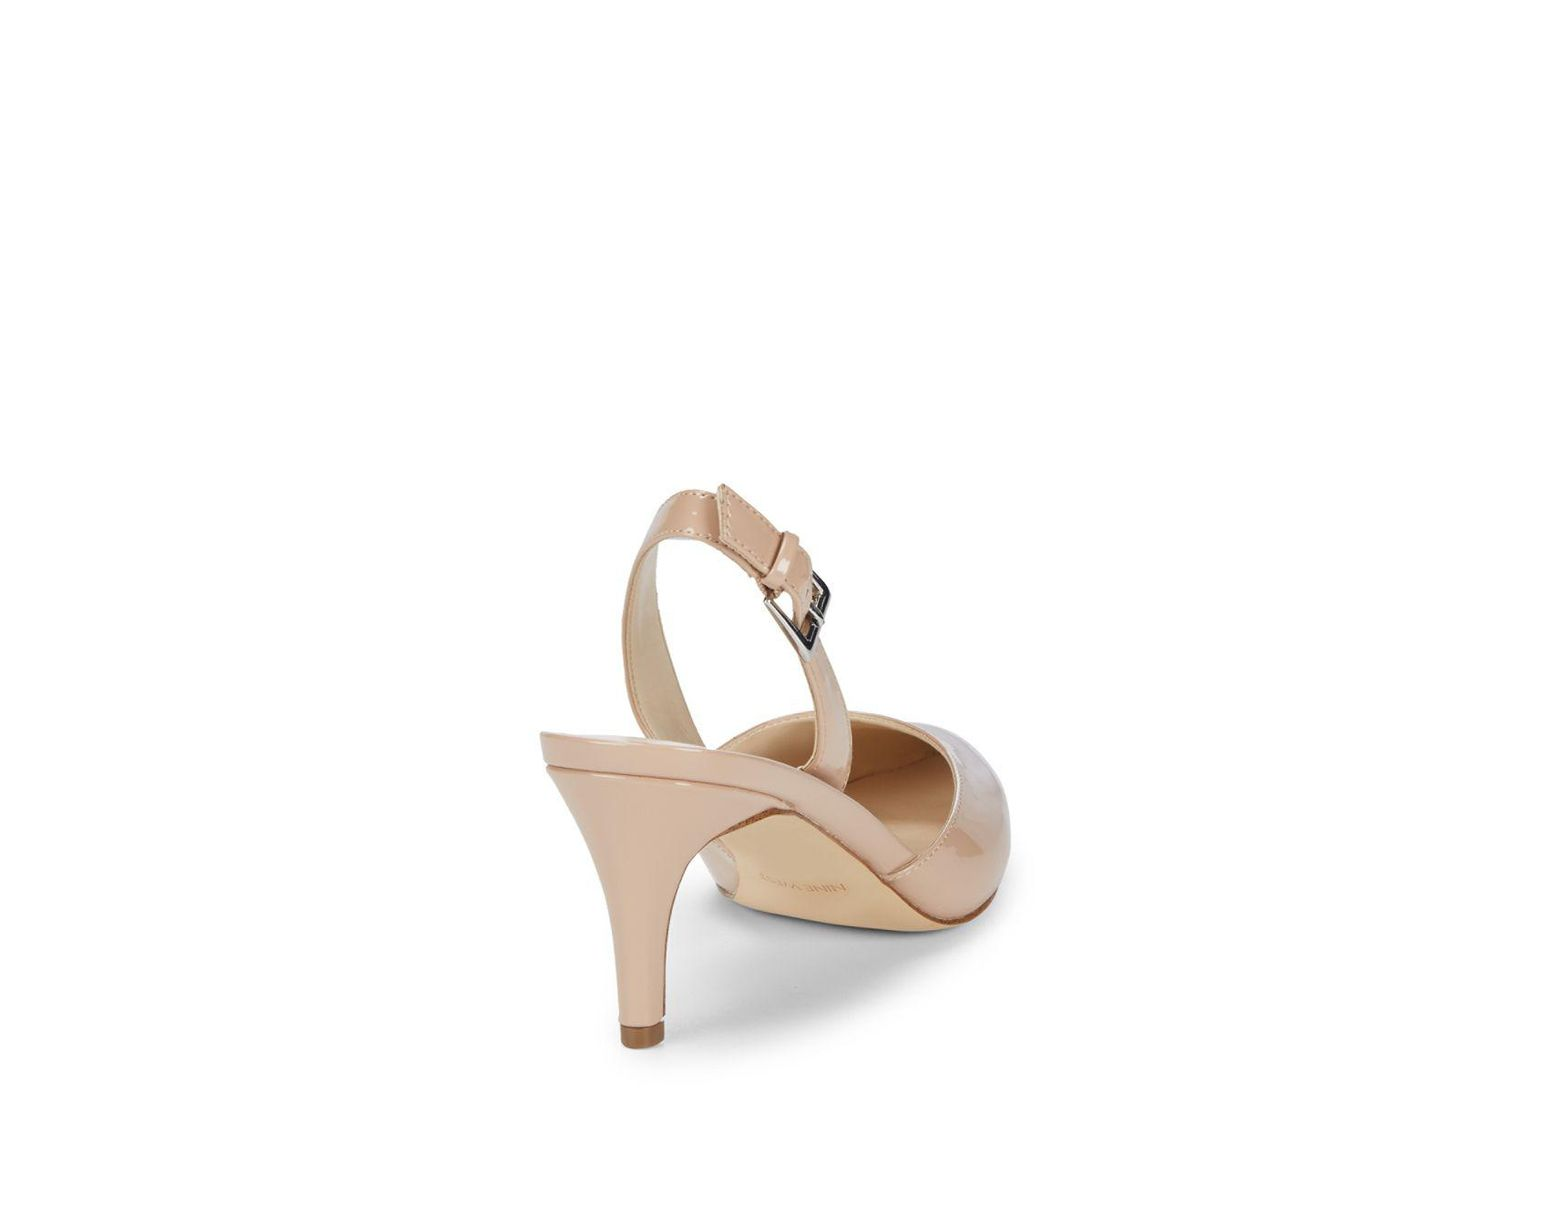 835909adb Nine West Epiphany Slingback Heels in Natural - Lyst